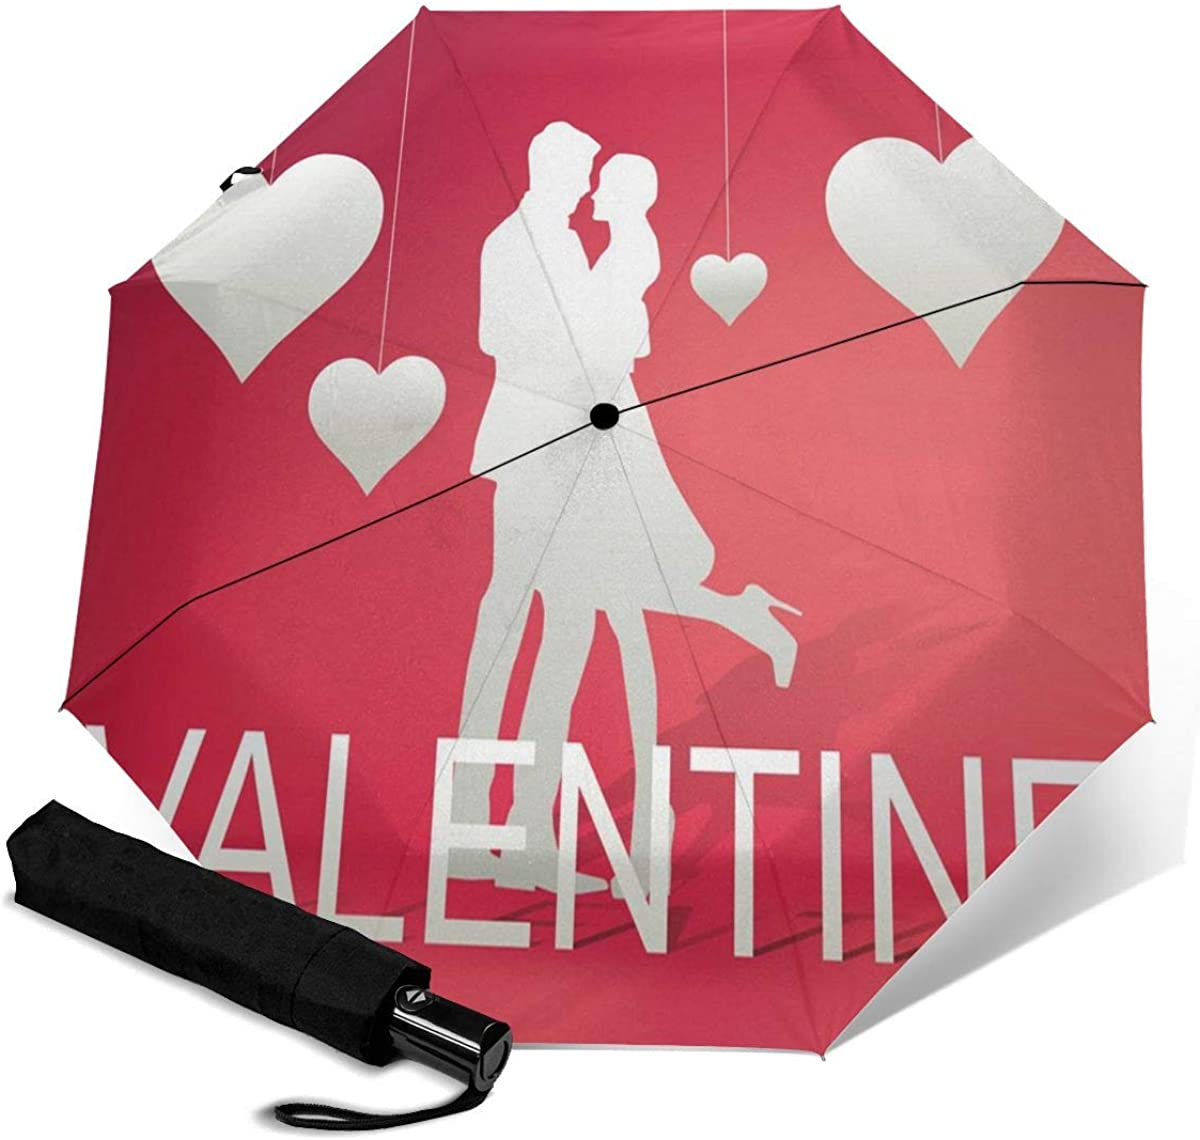 Image Compact Travel Umbrella Windproof Reinforced Canopy 8 Ribs Umbrella Auto Open And Close Button Customized